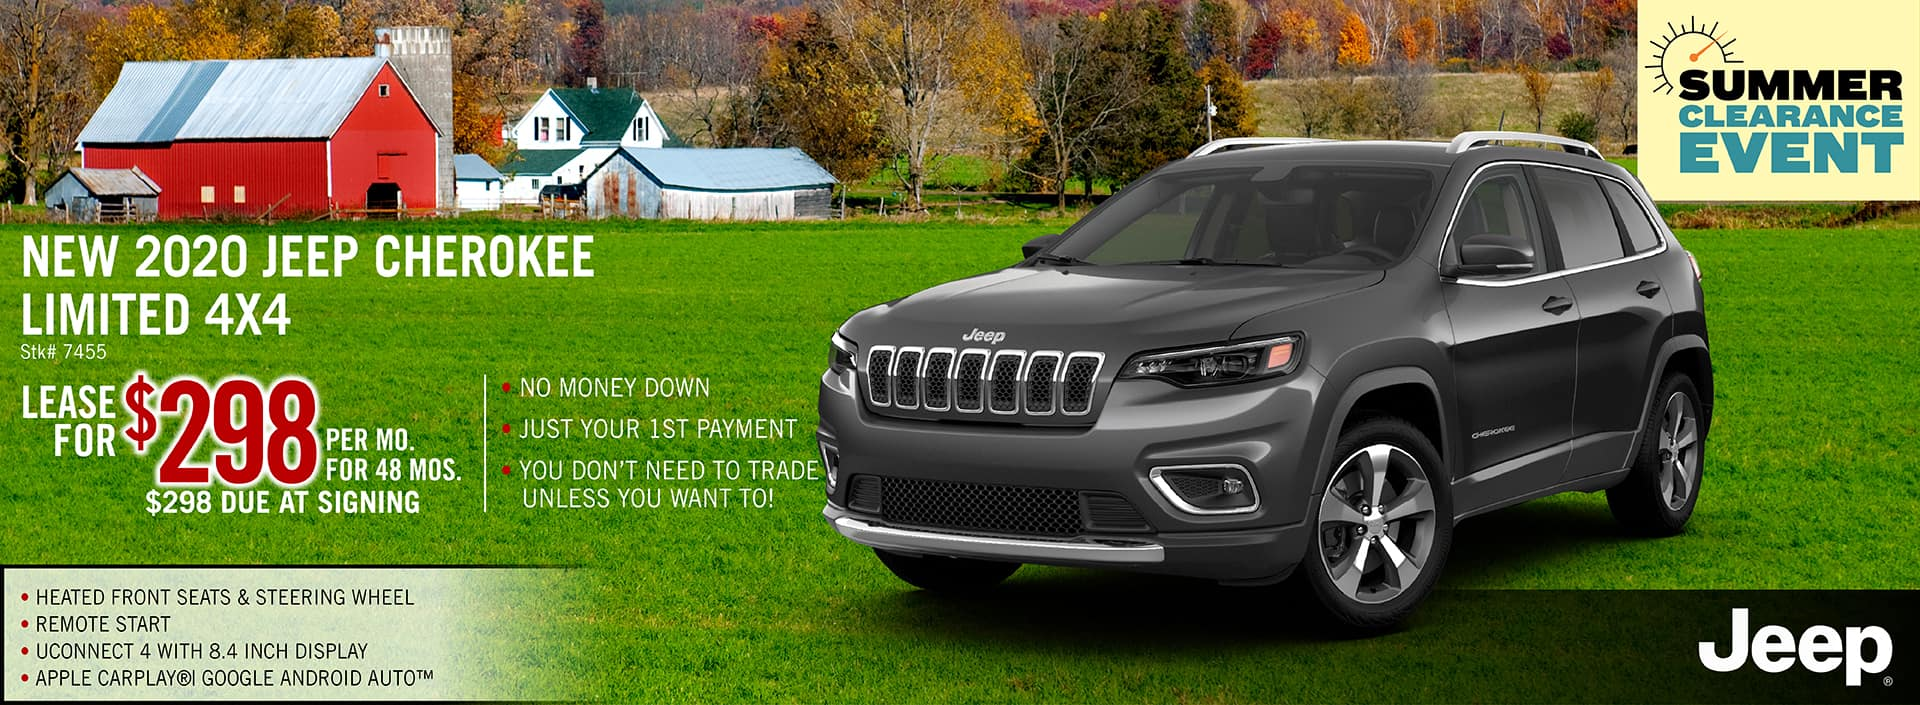 2020 Jeep Cherokee Lease Offer | Midstate CDJR